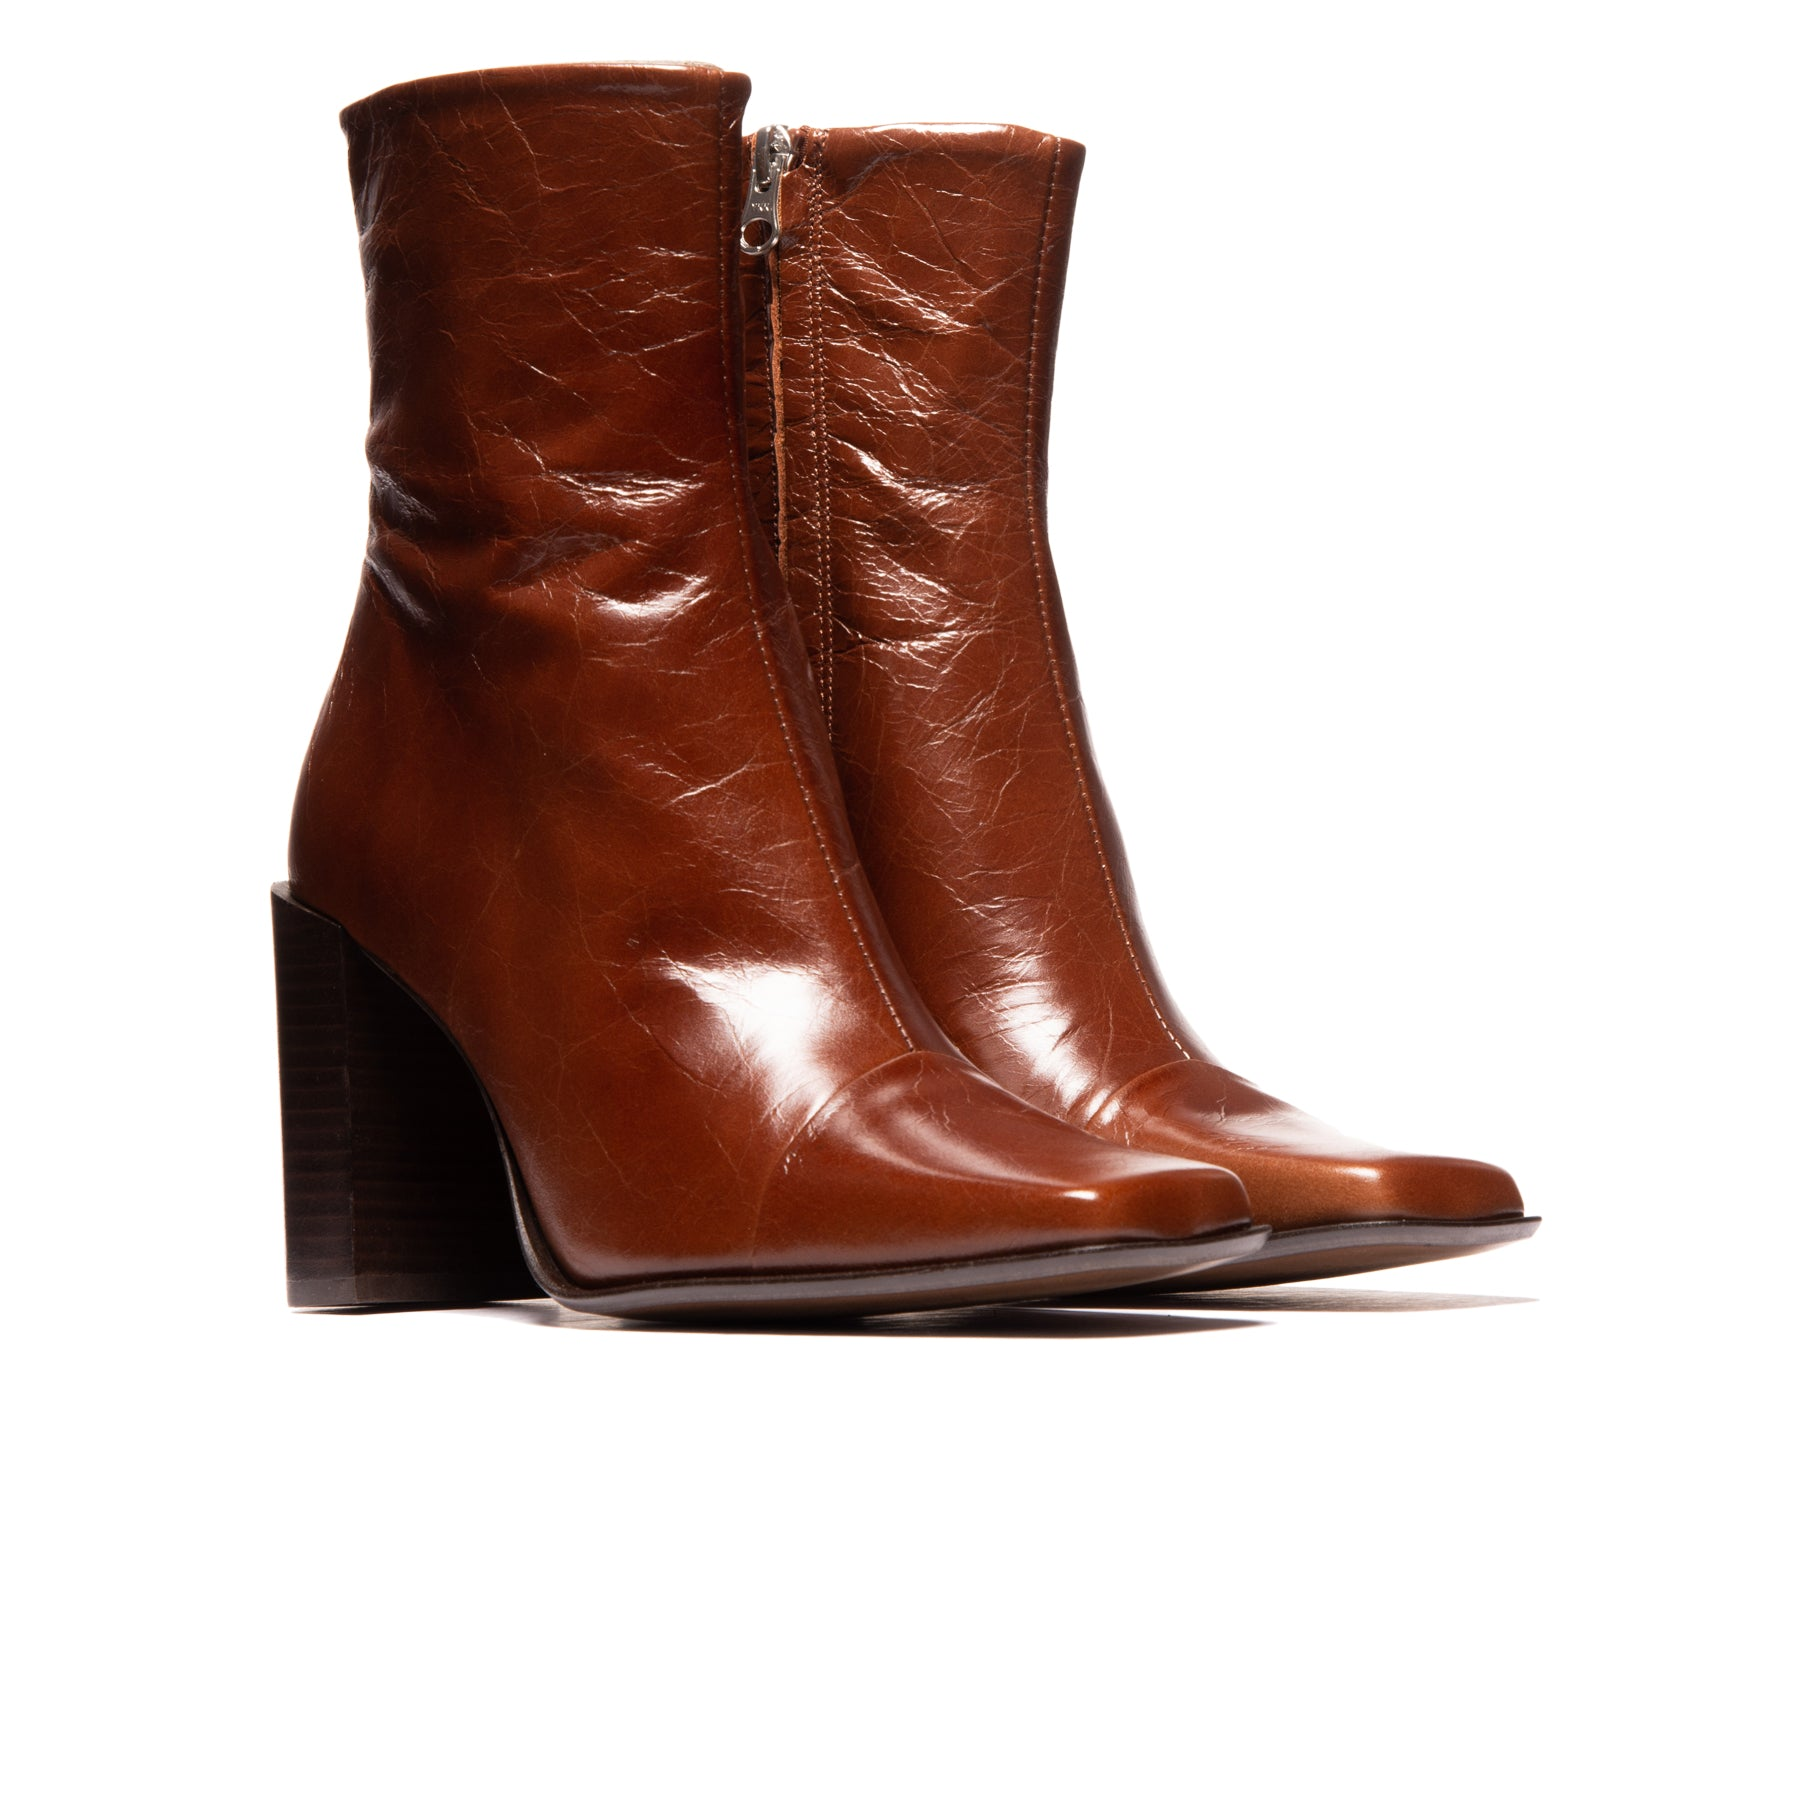 Stirling Chestnut Leather